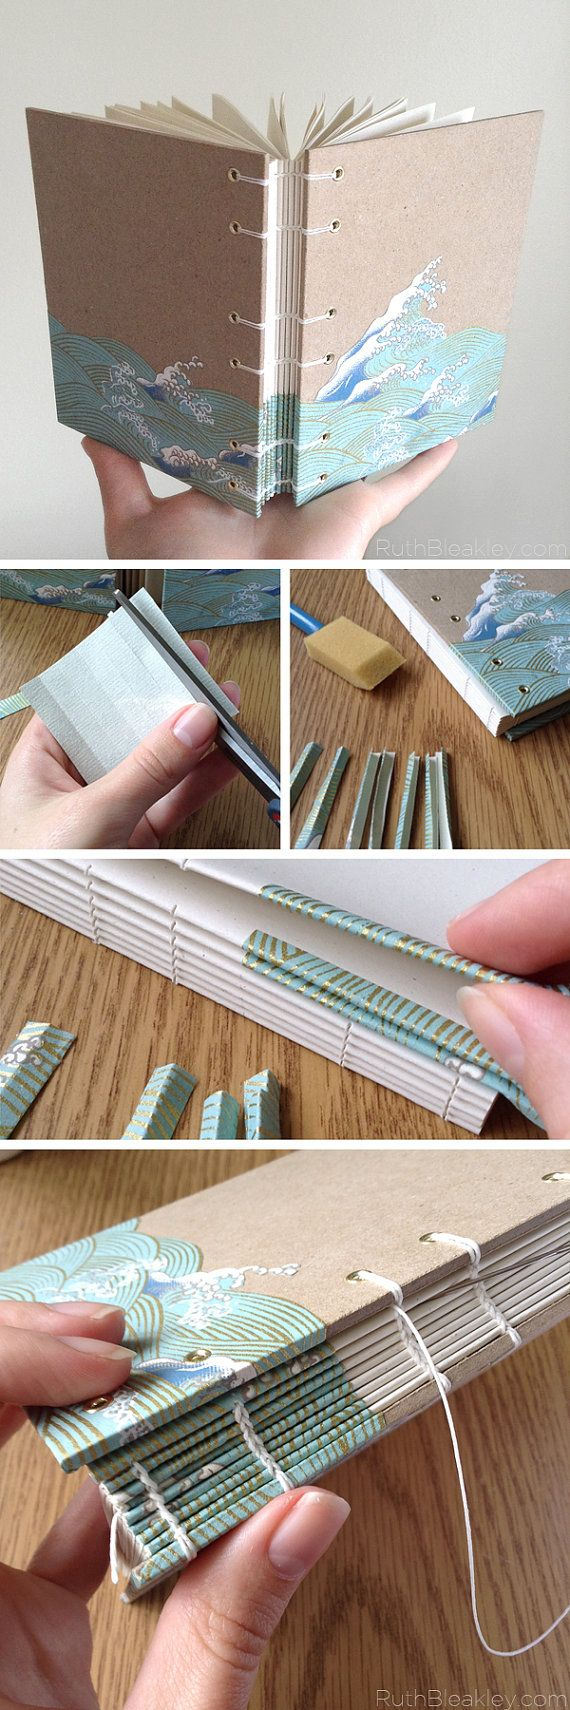 I love this idea for FLOW: 30 Day Journal Project - a Handmade Journal with Waves cut out of Japanese Chiyogami paper by bookbinder Ruth Bleakley